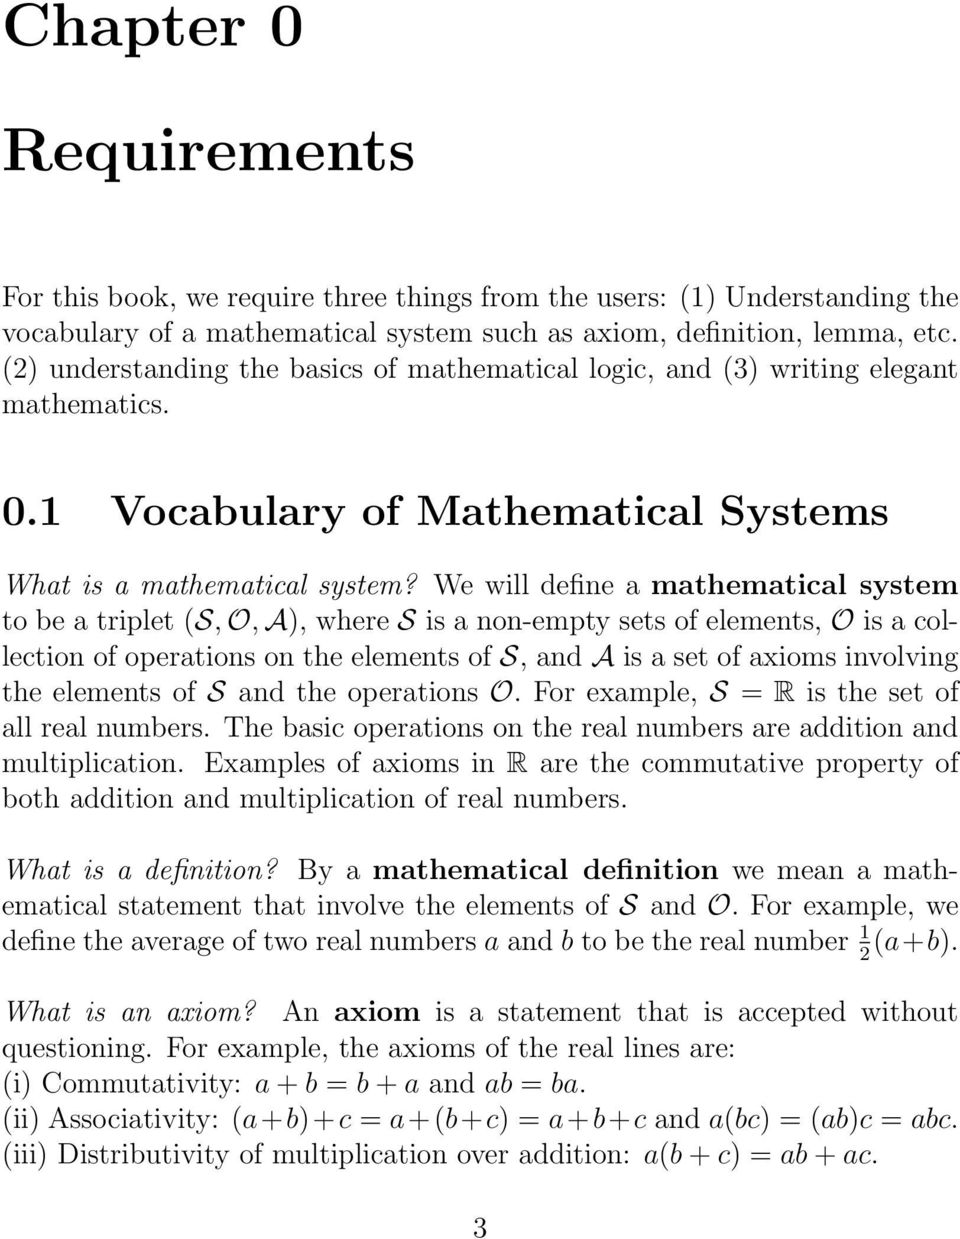 We will define a mathematical system to be a triplet (S, O, A), where S is a non-empty sets of elements, O is a collection of operations on the elements of S, and A is a set of axioms involving the